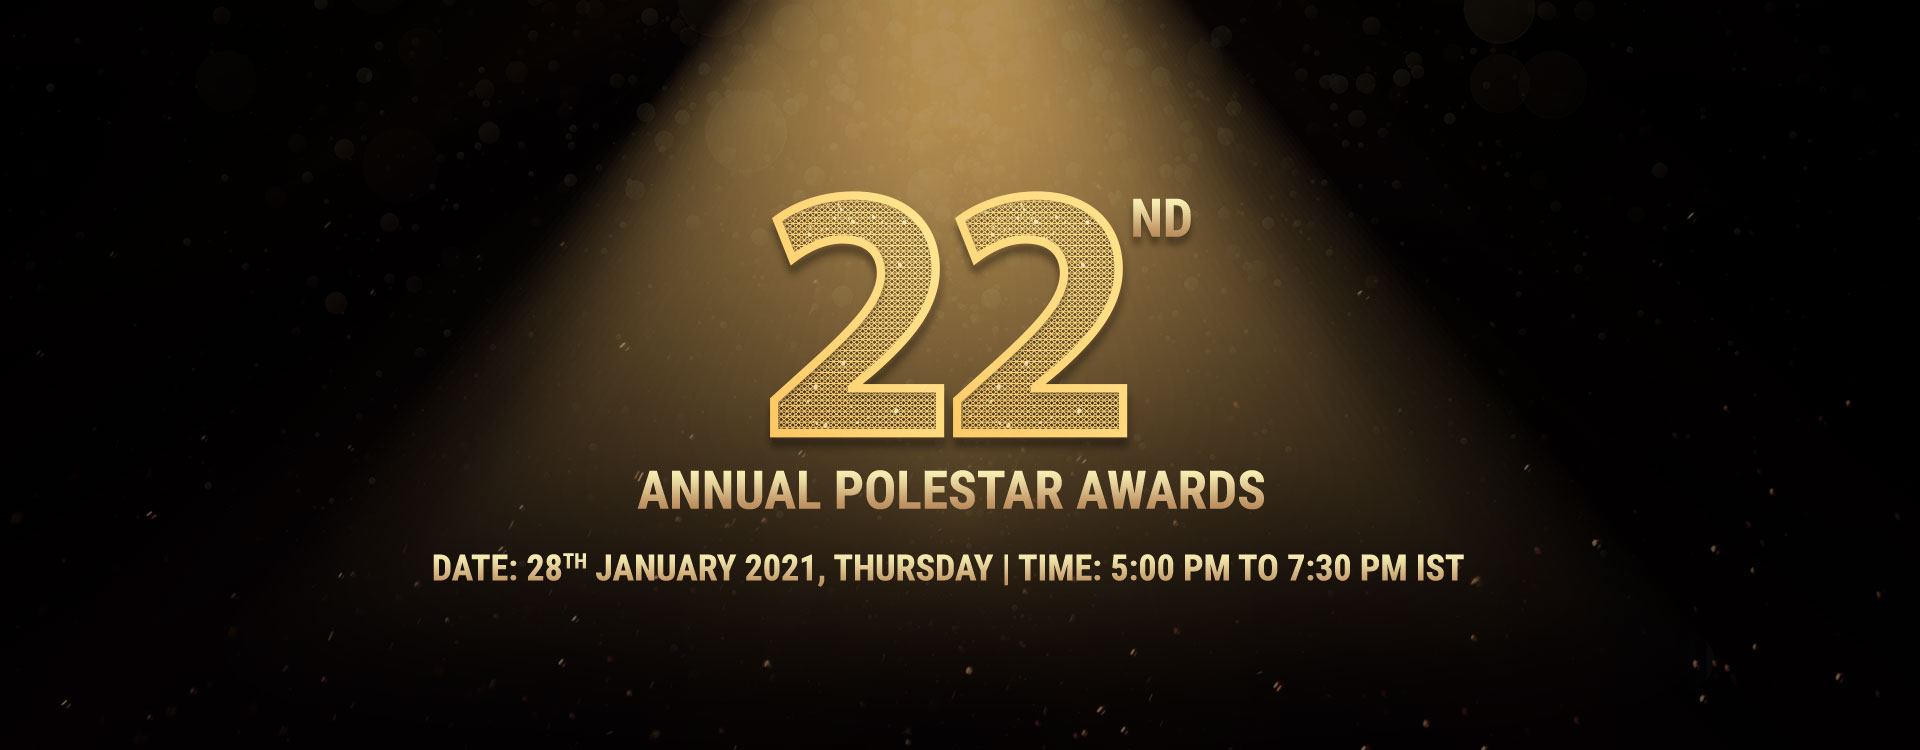 22nd Polestar Awards